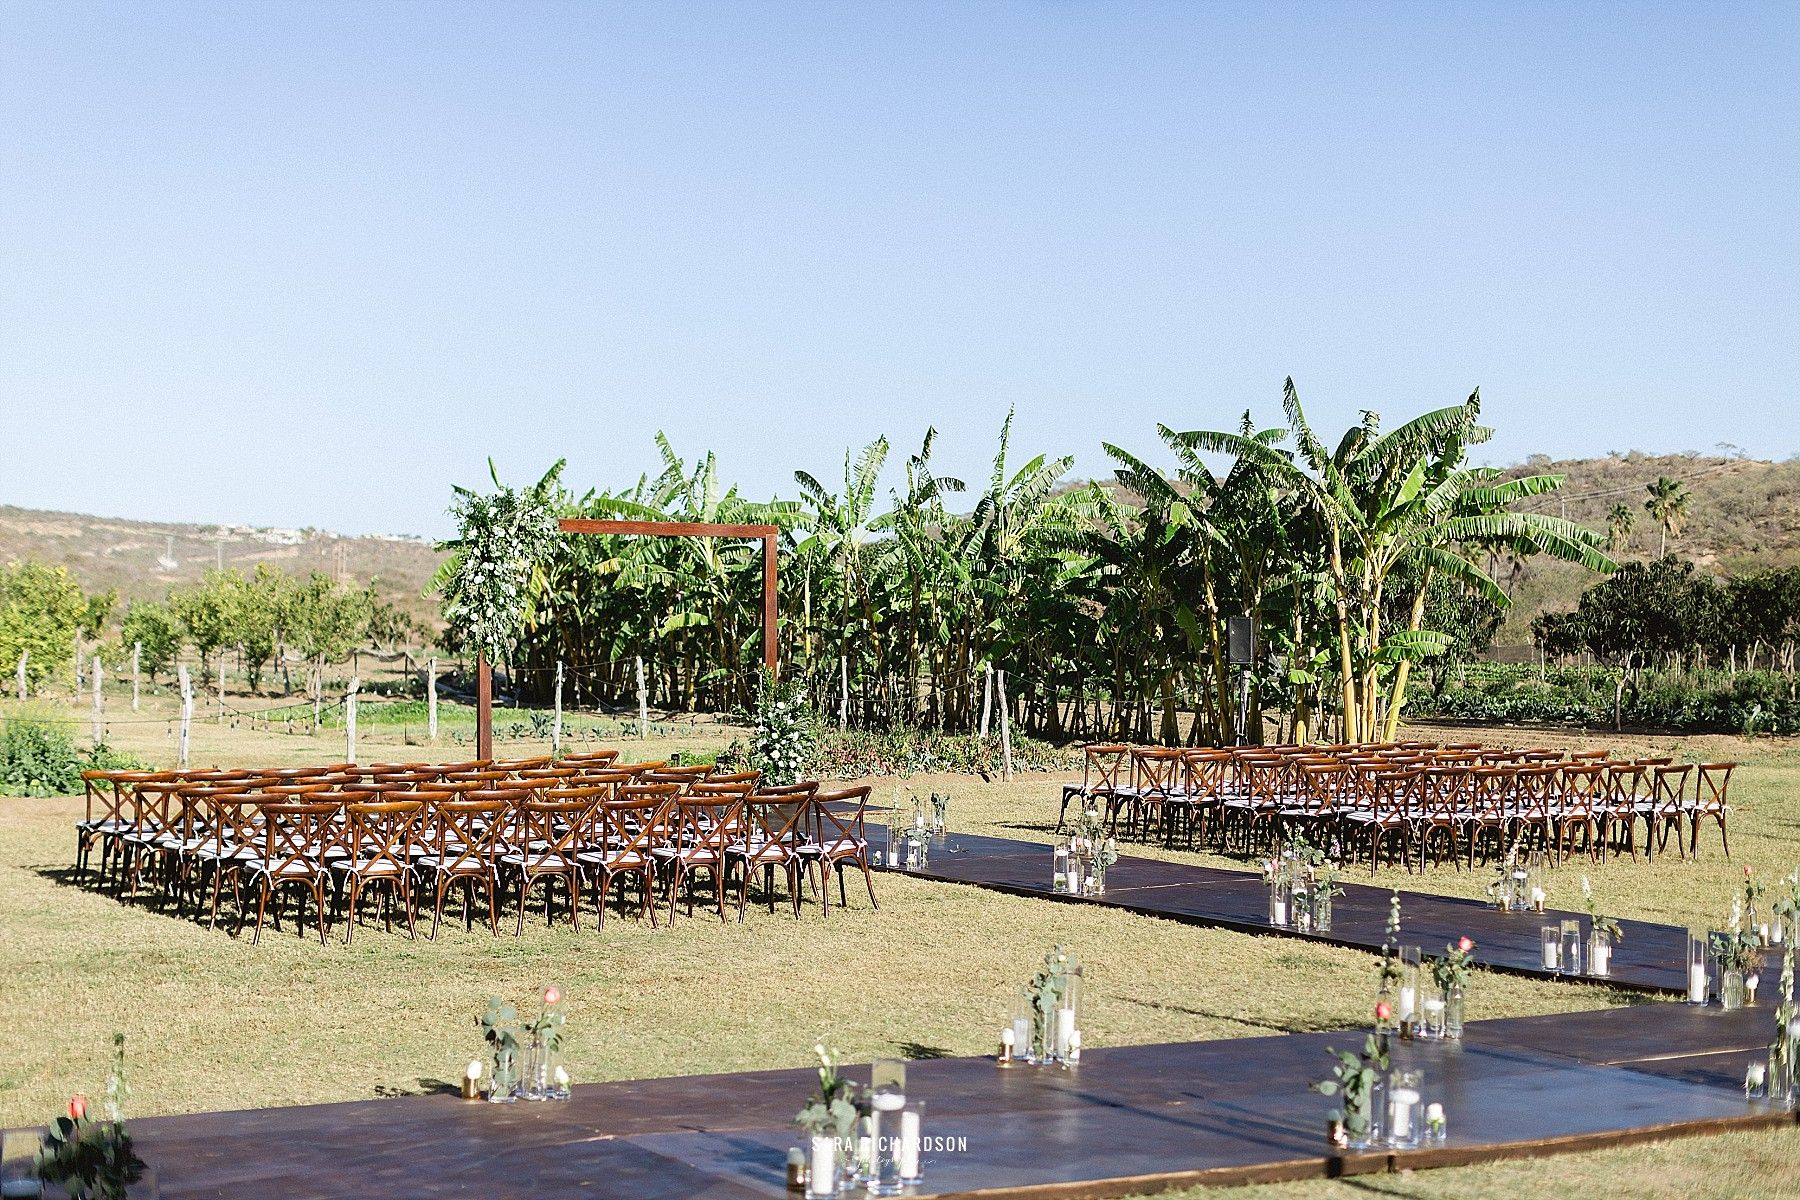 This is the Ceremony setting for Lindsey and Noel's Wedding. They decided to have a hard wooden floor for their guests so they do not have to walk in the grass, since most of them wore heels. We decided to decorate the aisle and make it look a little fuller.